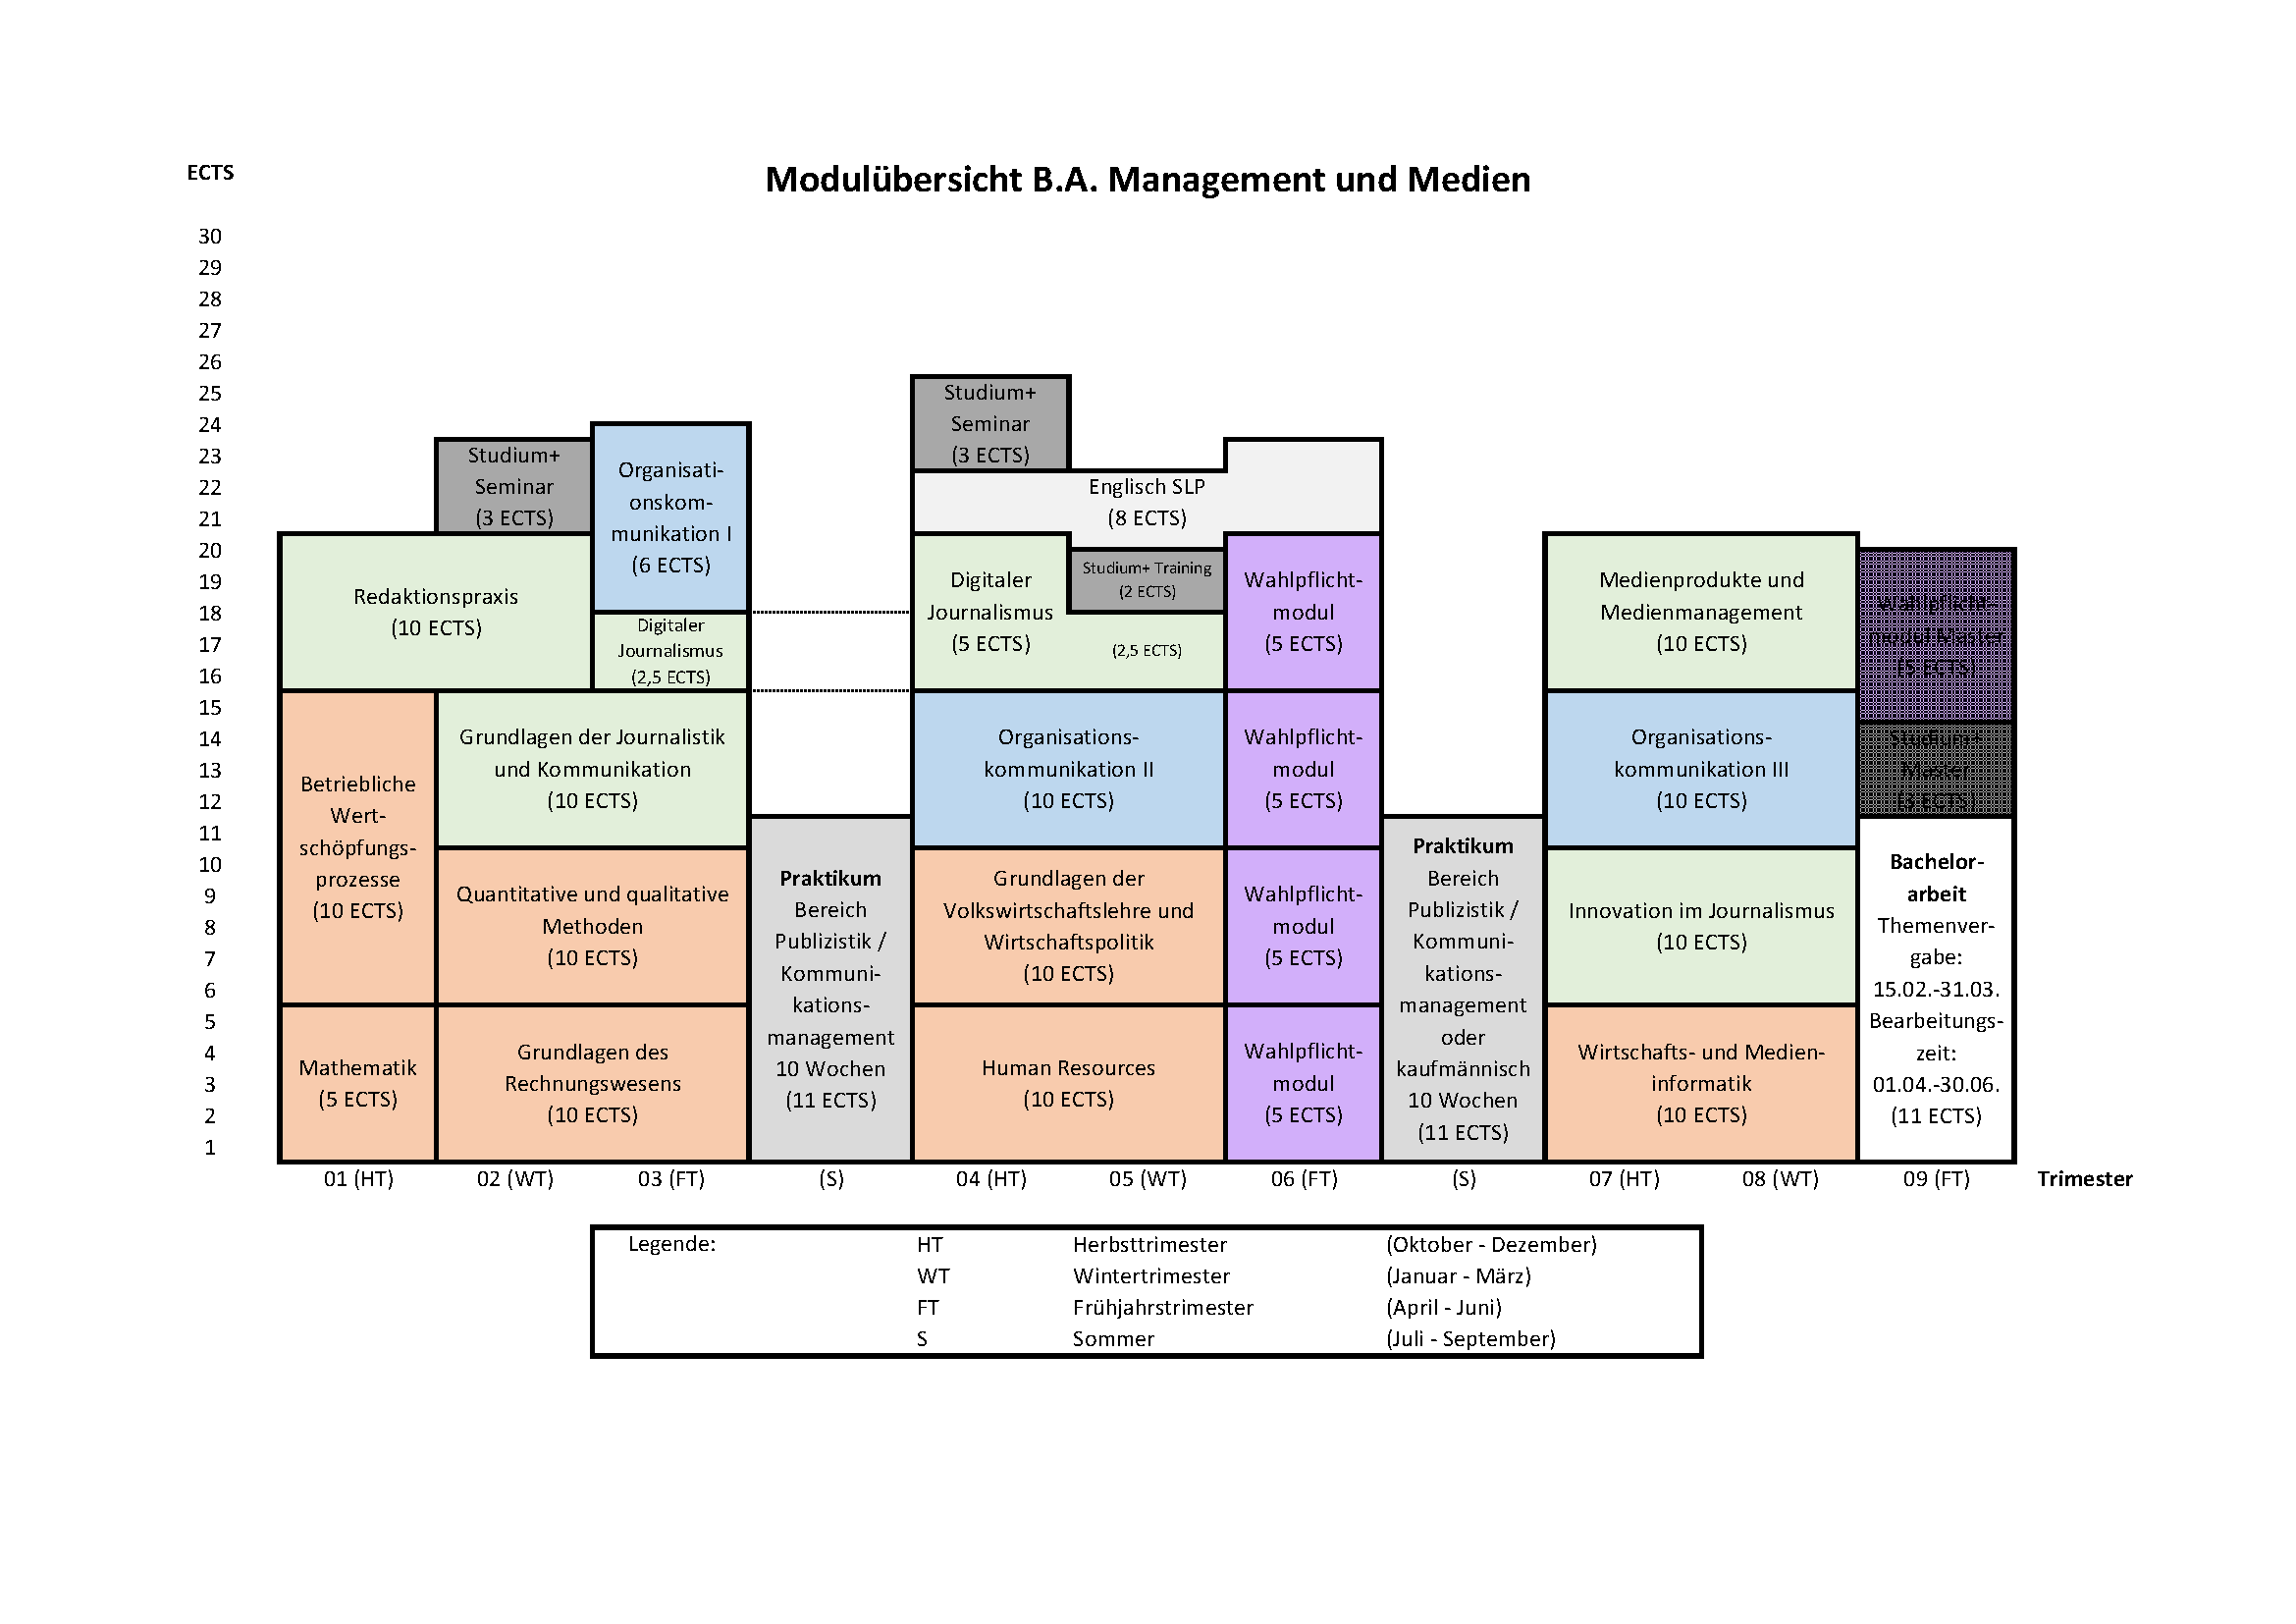 Module Overview B.A. as of 2018 (in German).png